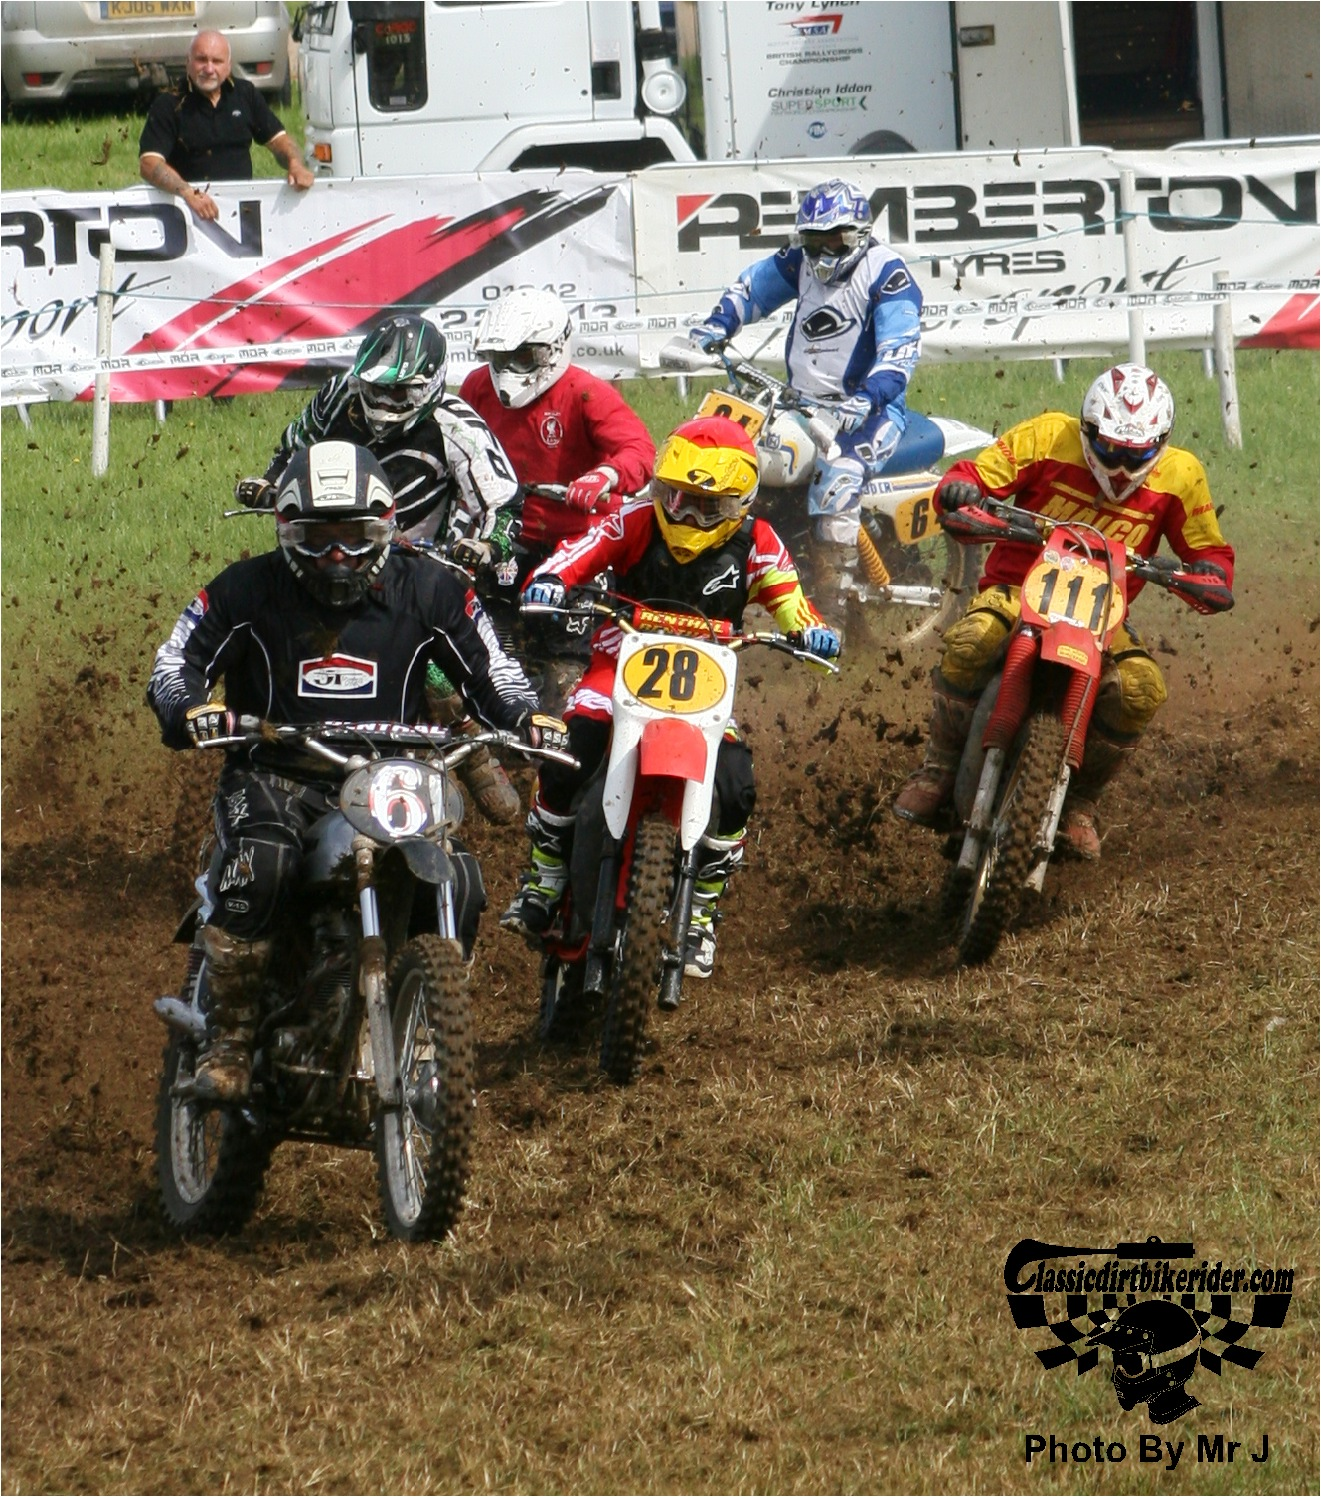 king of the castle 2015 photos Farleigh Castle twinshock motocross classicdirtbikerider.com 138